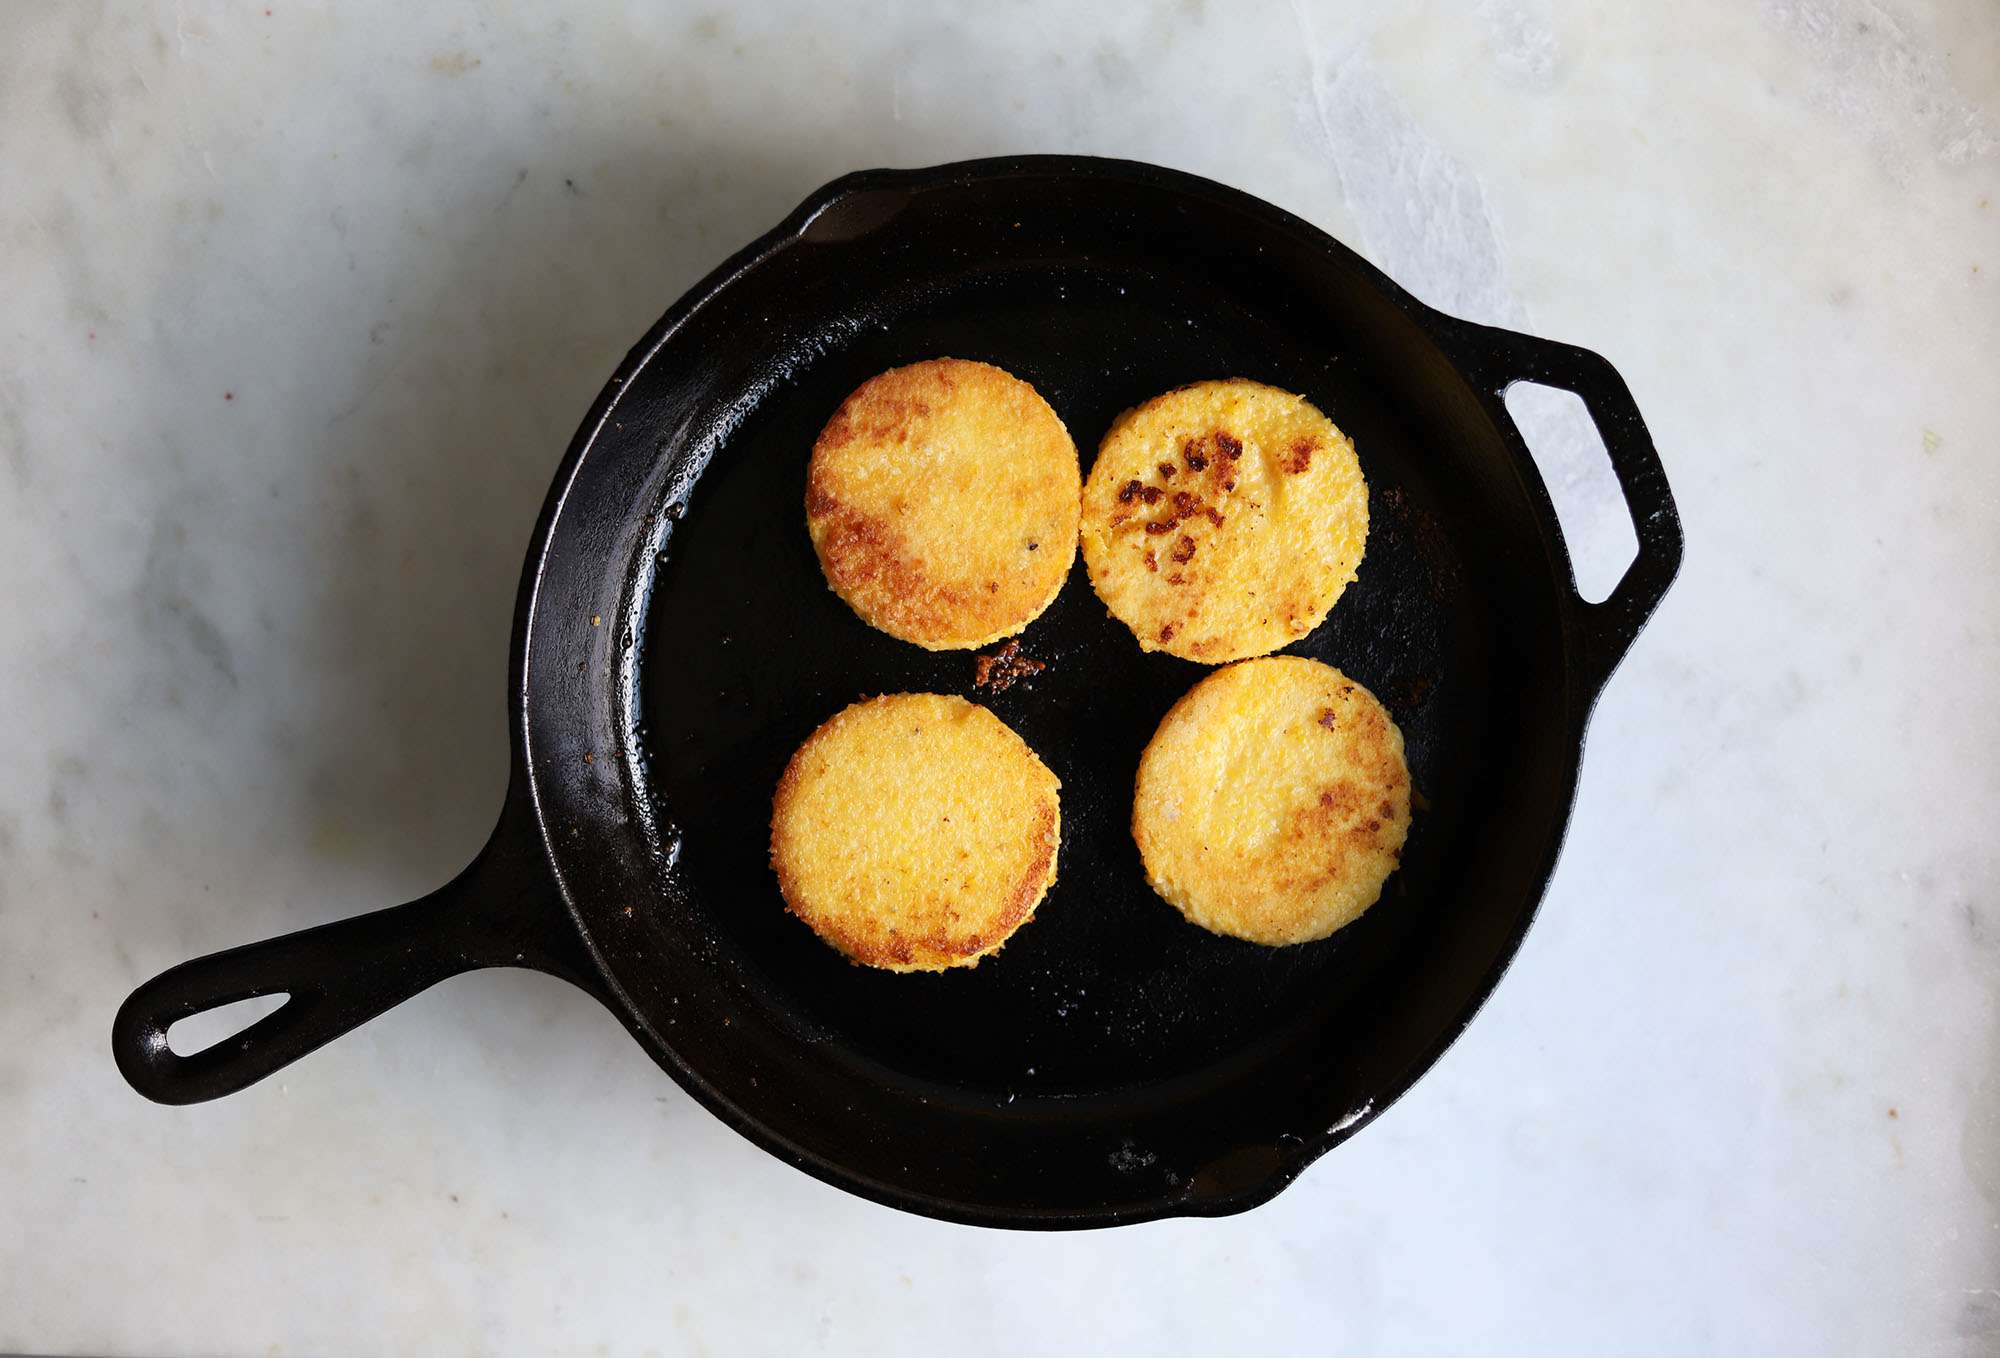 polenta cooked in a cast iron skillet